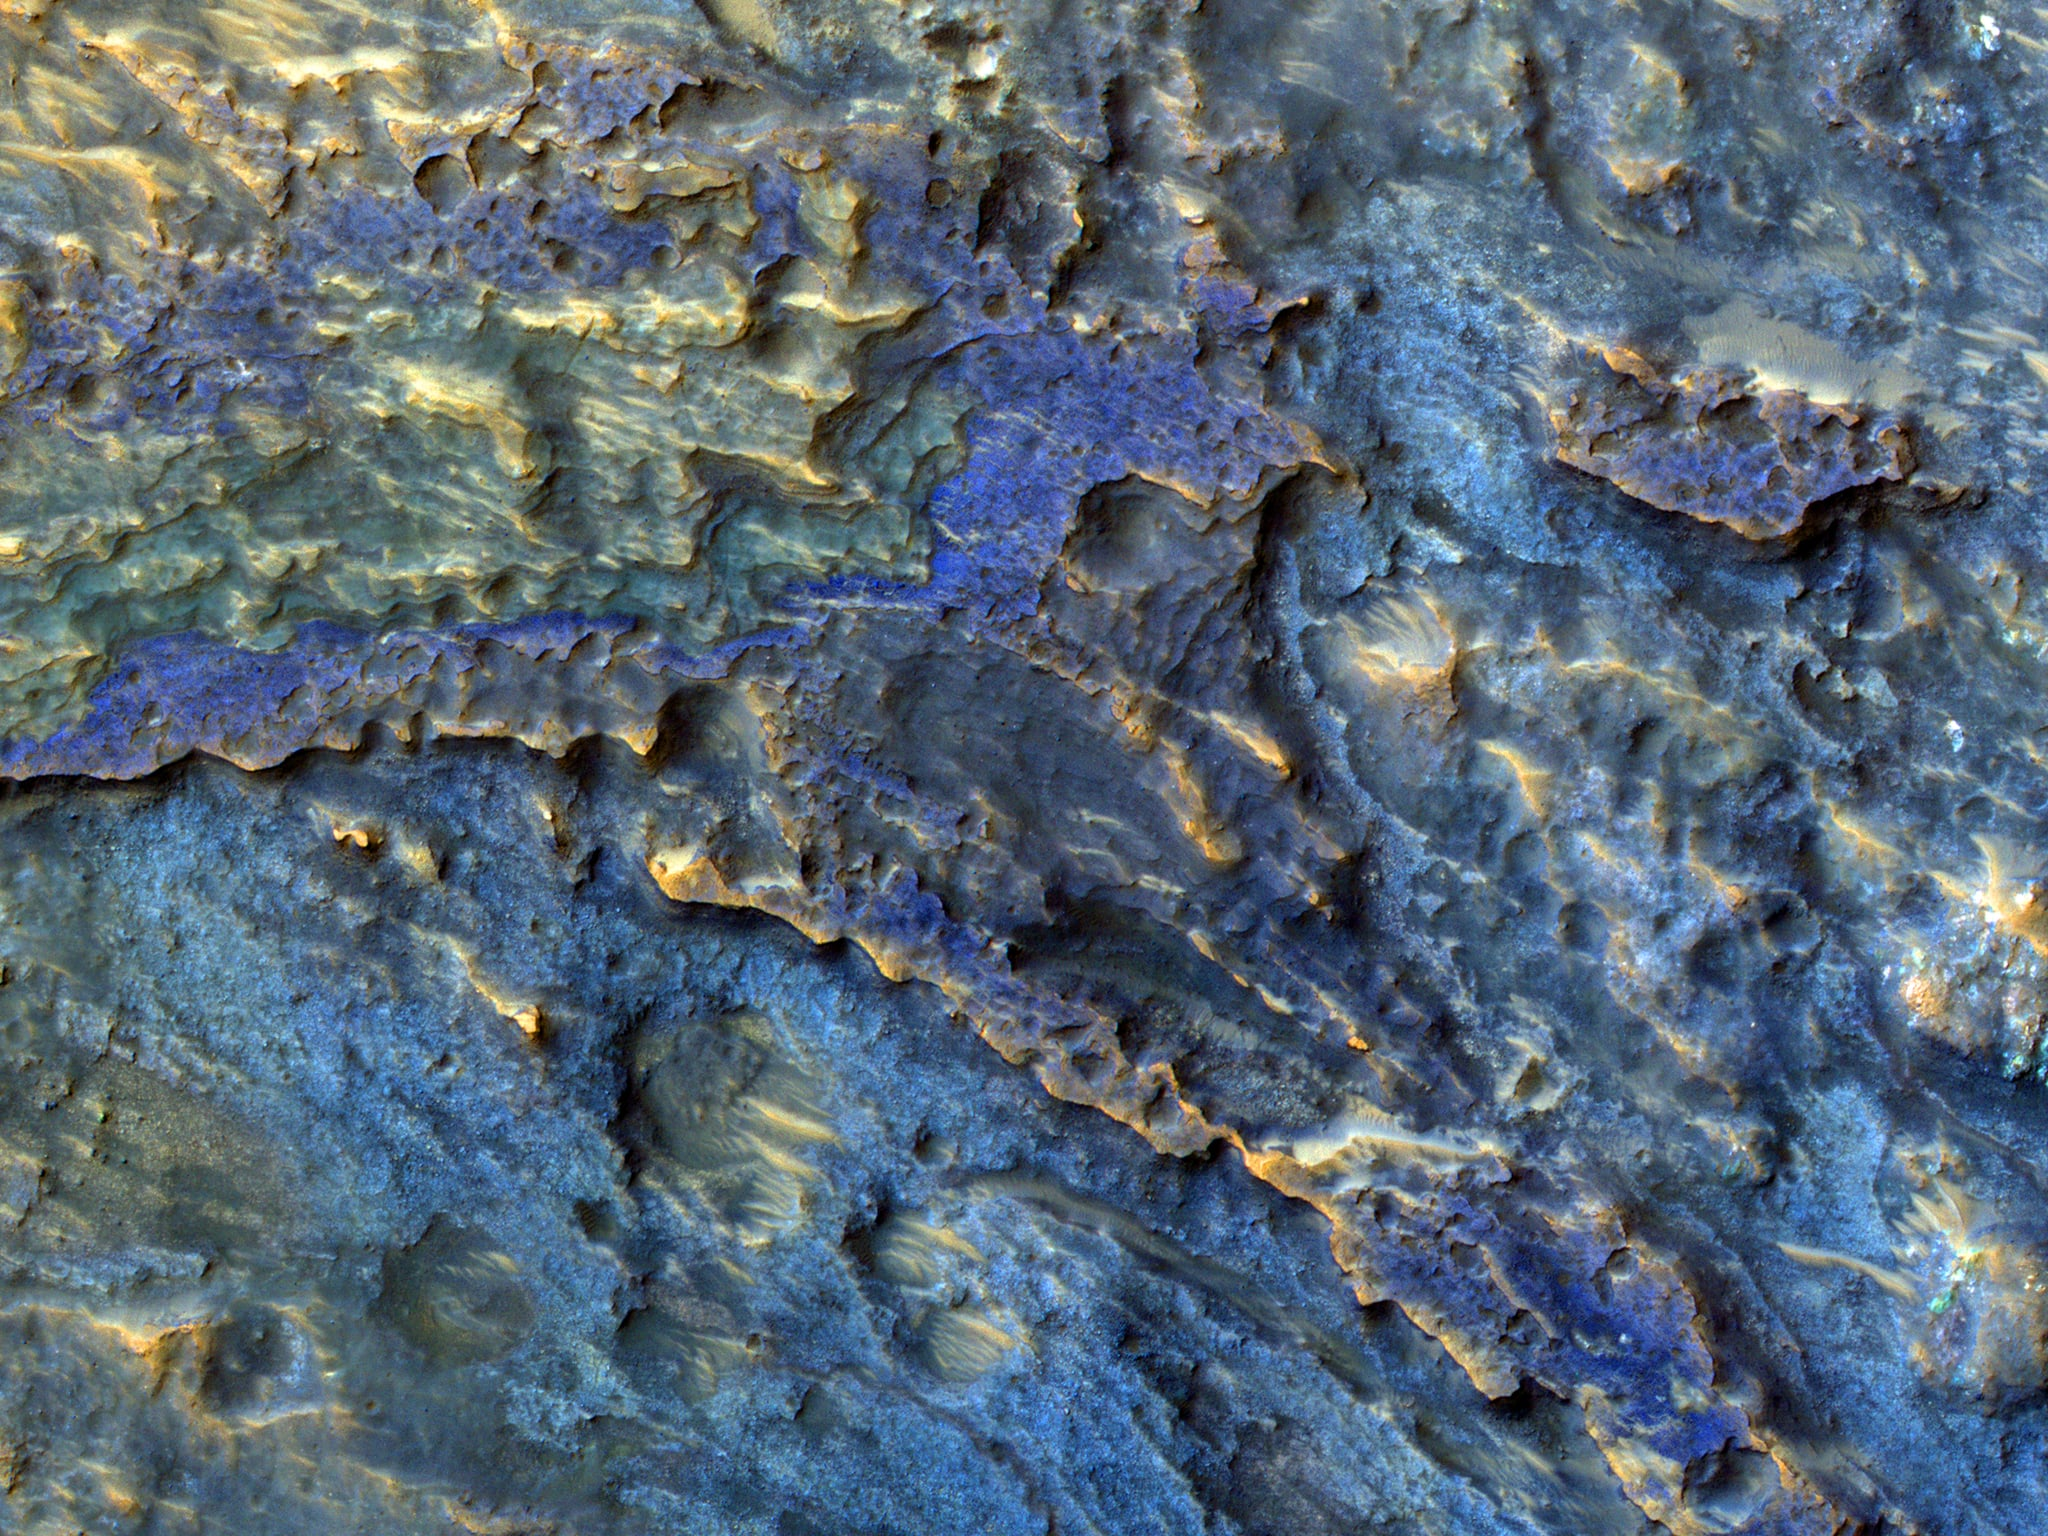 """""""This image covers part of the floor of a large ancient impact crater, near the western rim. The subimage shows layered deposits, many with distinct colors (the colors are enhanced or exaggerated). These layers have a morphology similar to that seen elsewhere on Mars in obvious alluvial fans where channels emerge into craters."""" Source: NASA/JPL/University of Arizona"""